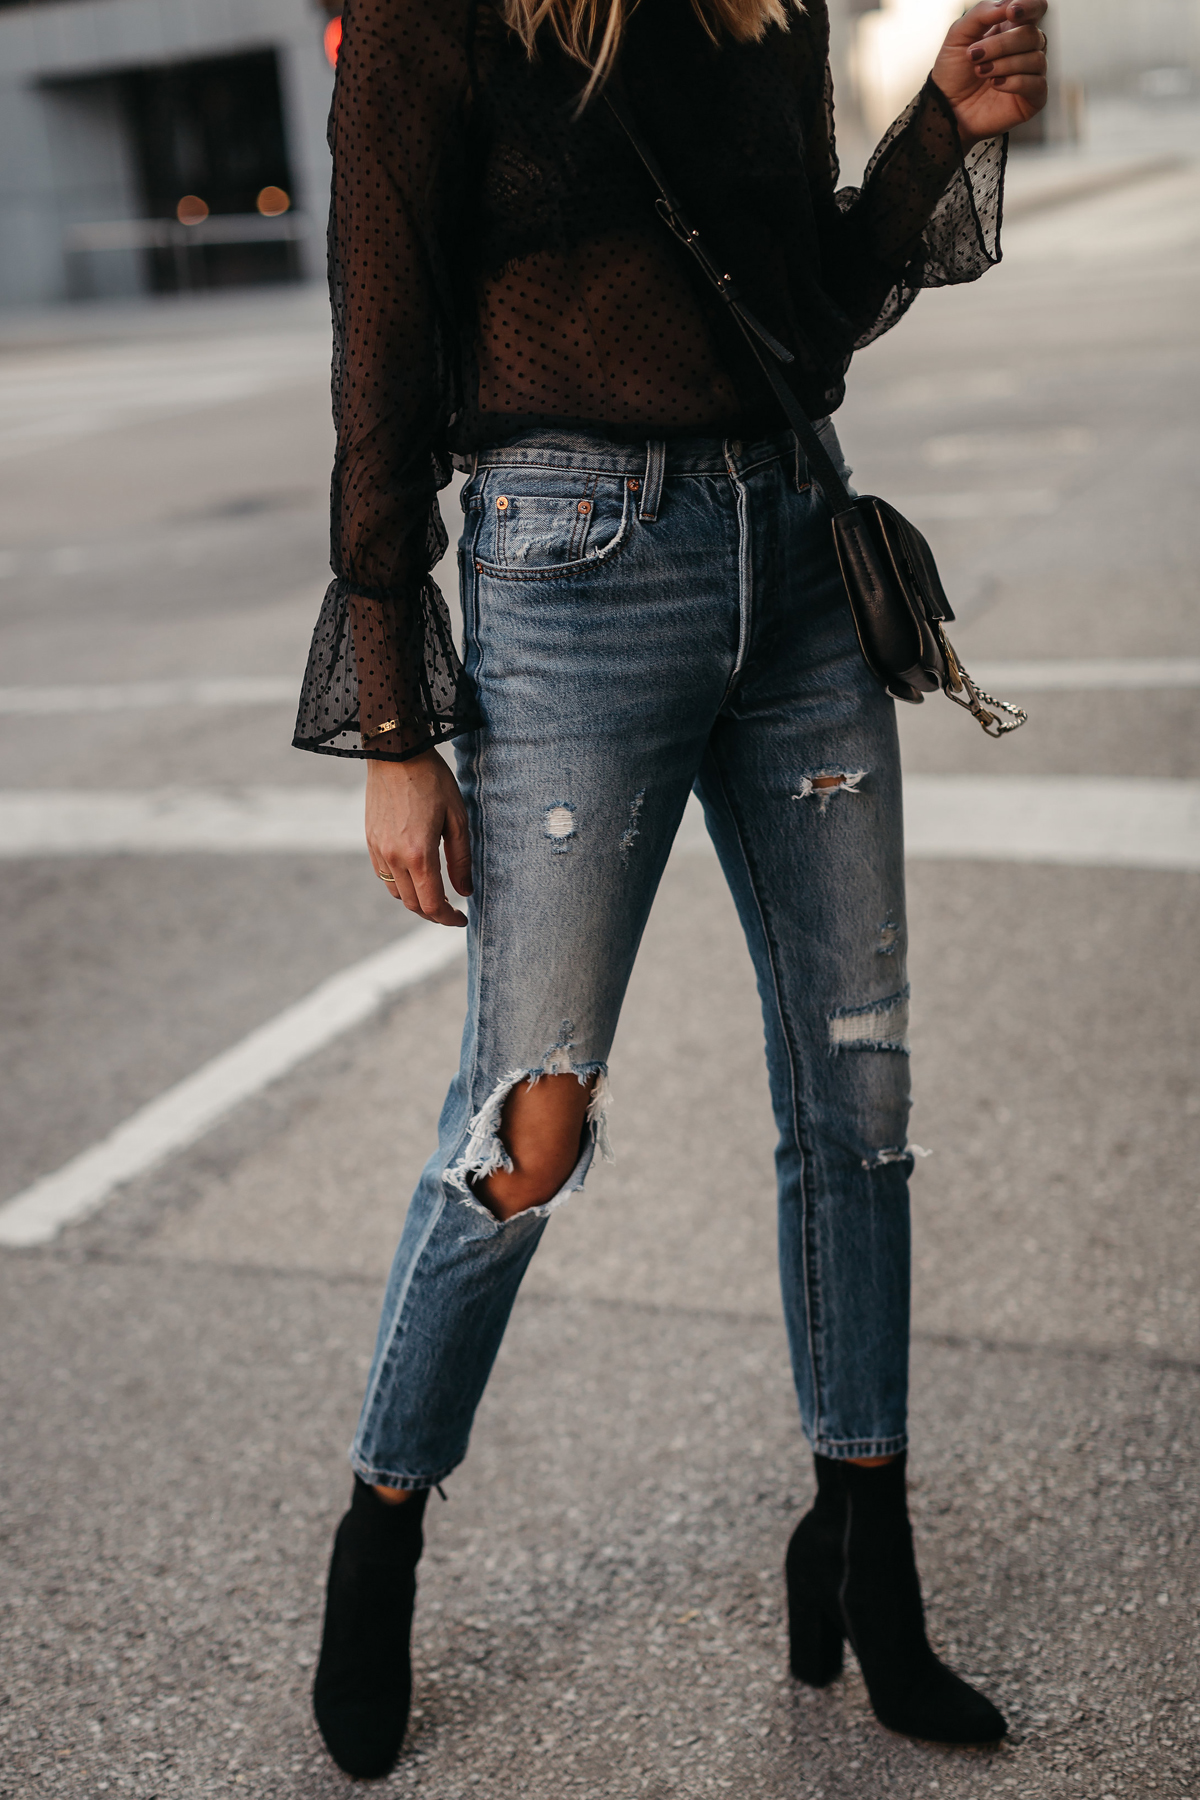 Levis Ripped Jeans Club Monaco Black Ankle Booties Black Lace Top Fashion Jackson Dallas Blogger Fashion Blogger Street Style